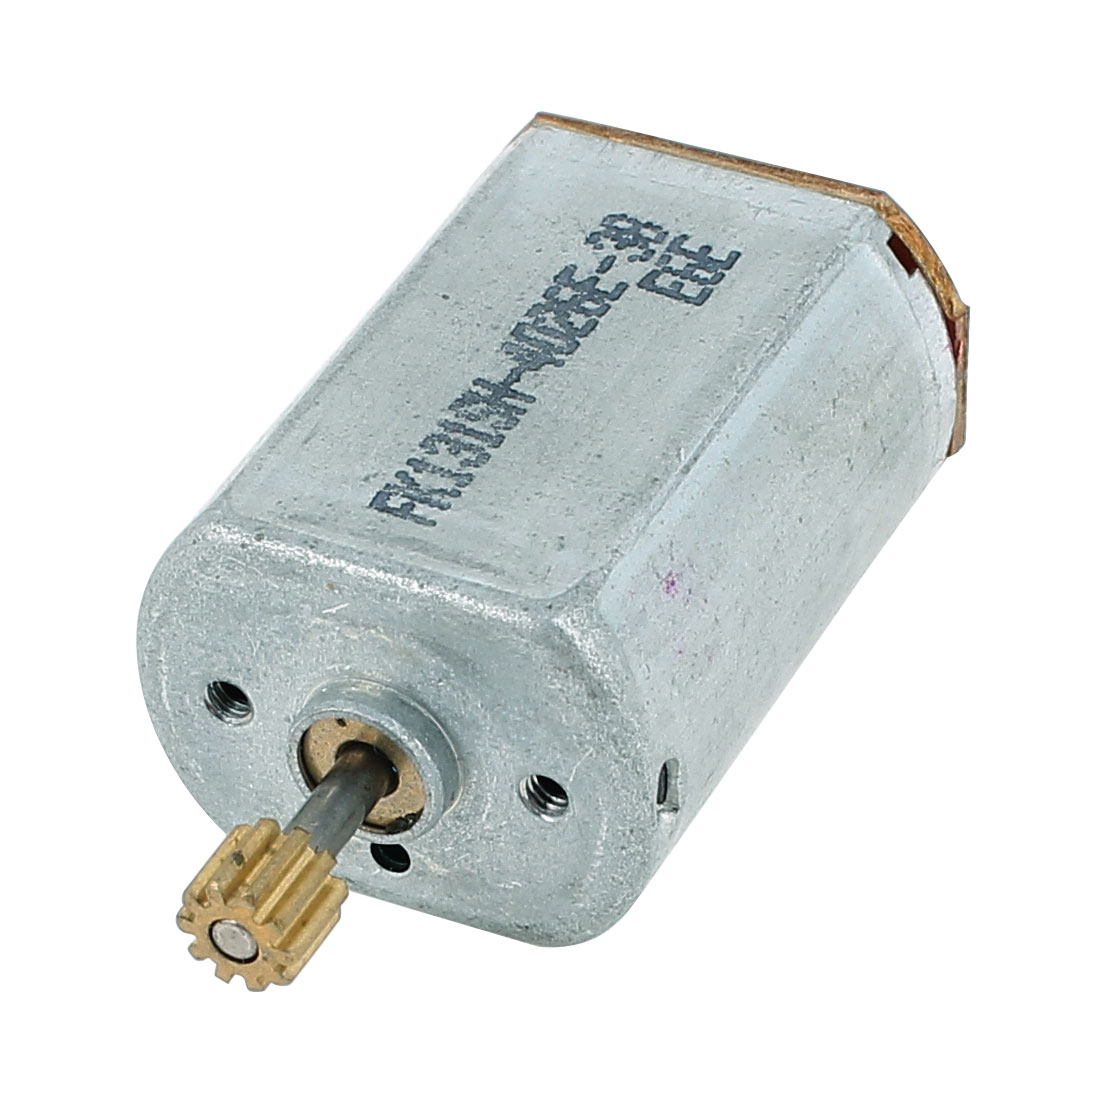 DC 3.7V 45000 RPM 2mm Shaft Dia Electric Mini Motor for RC Airplane Replacement